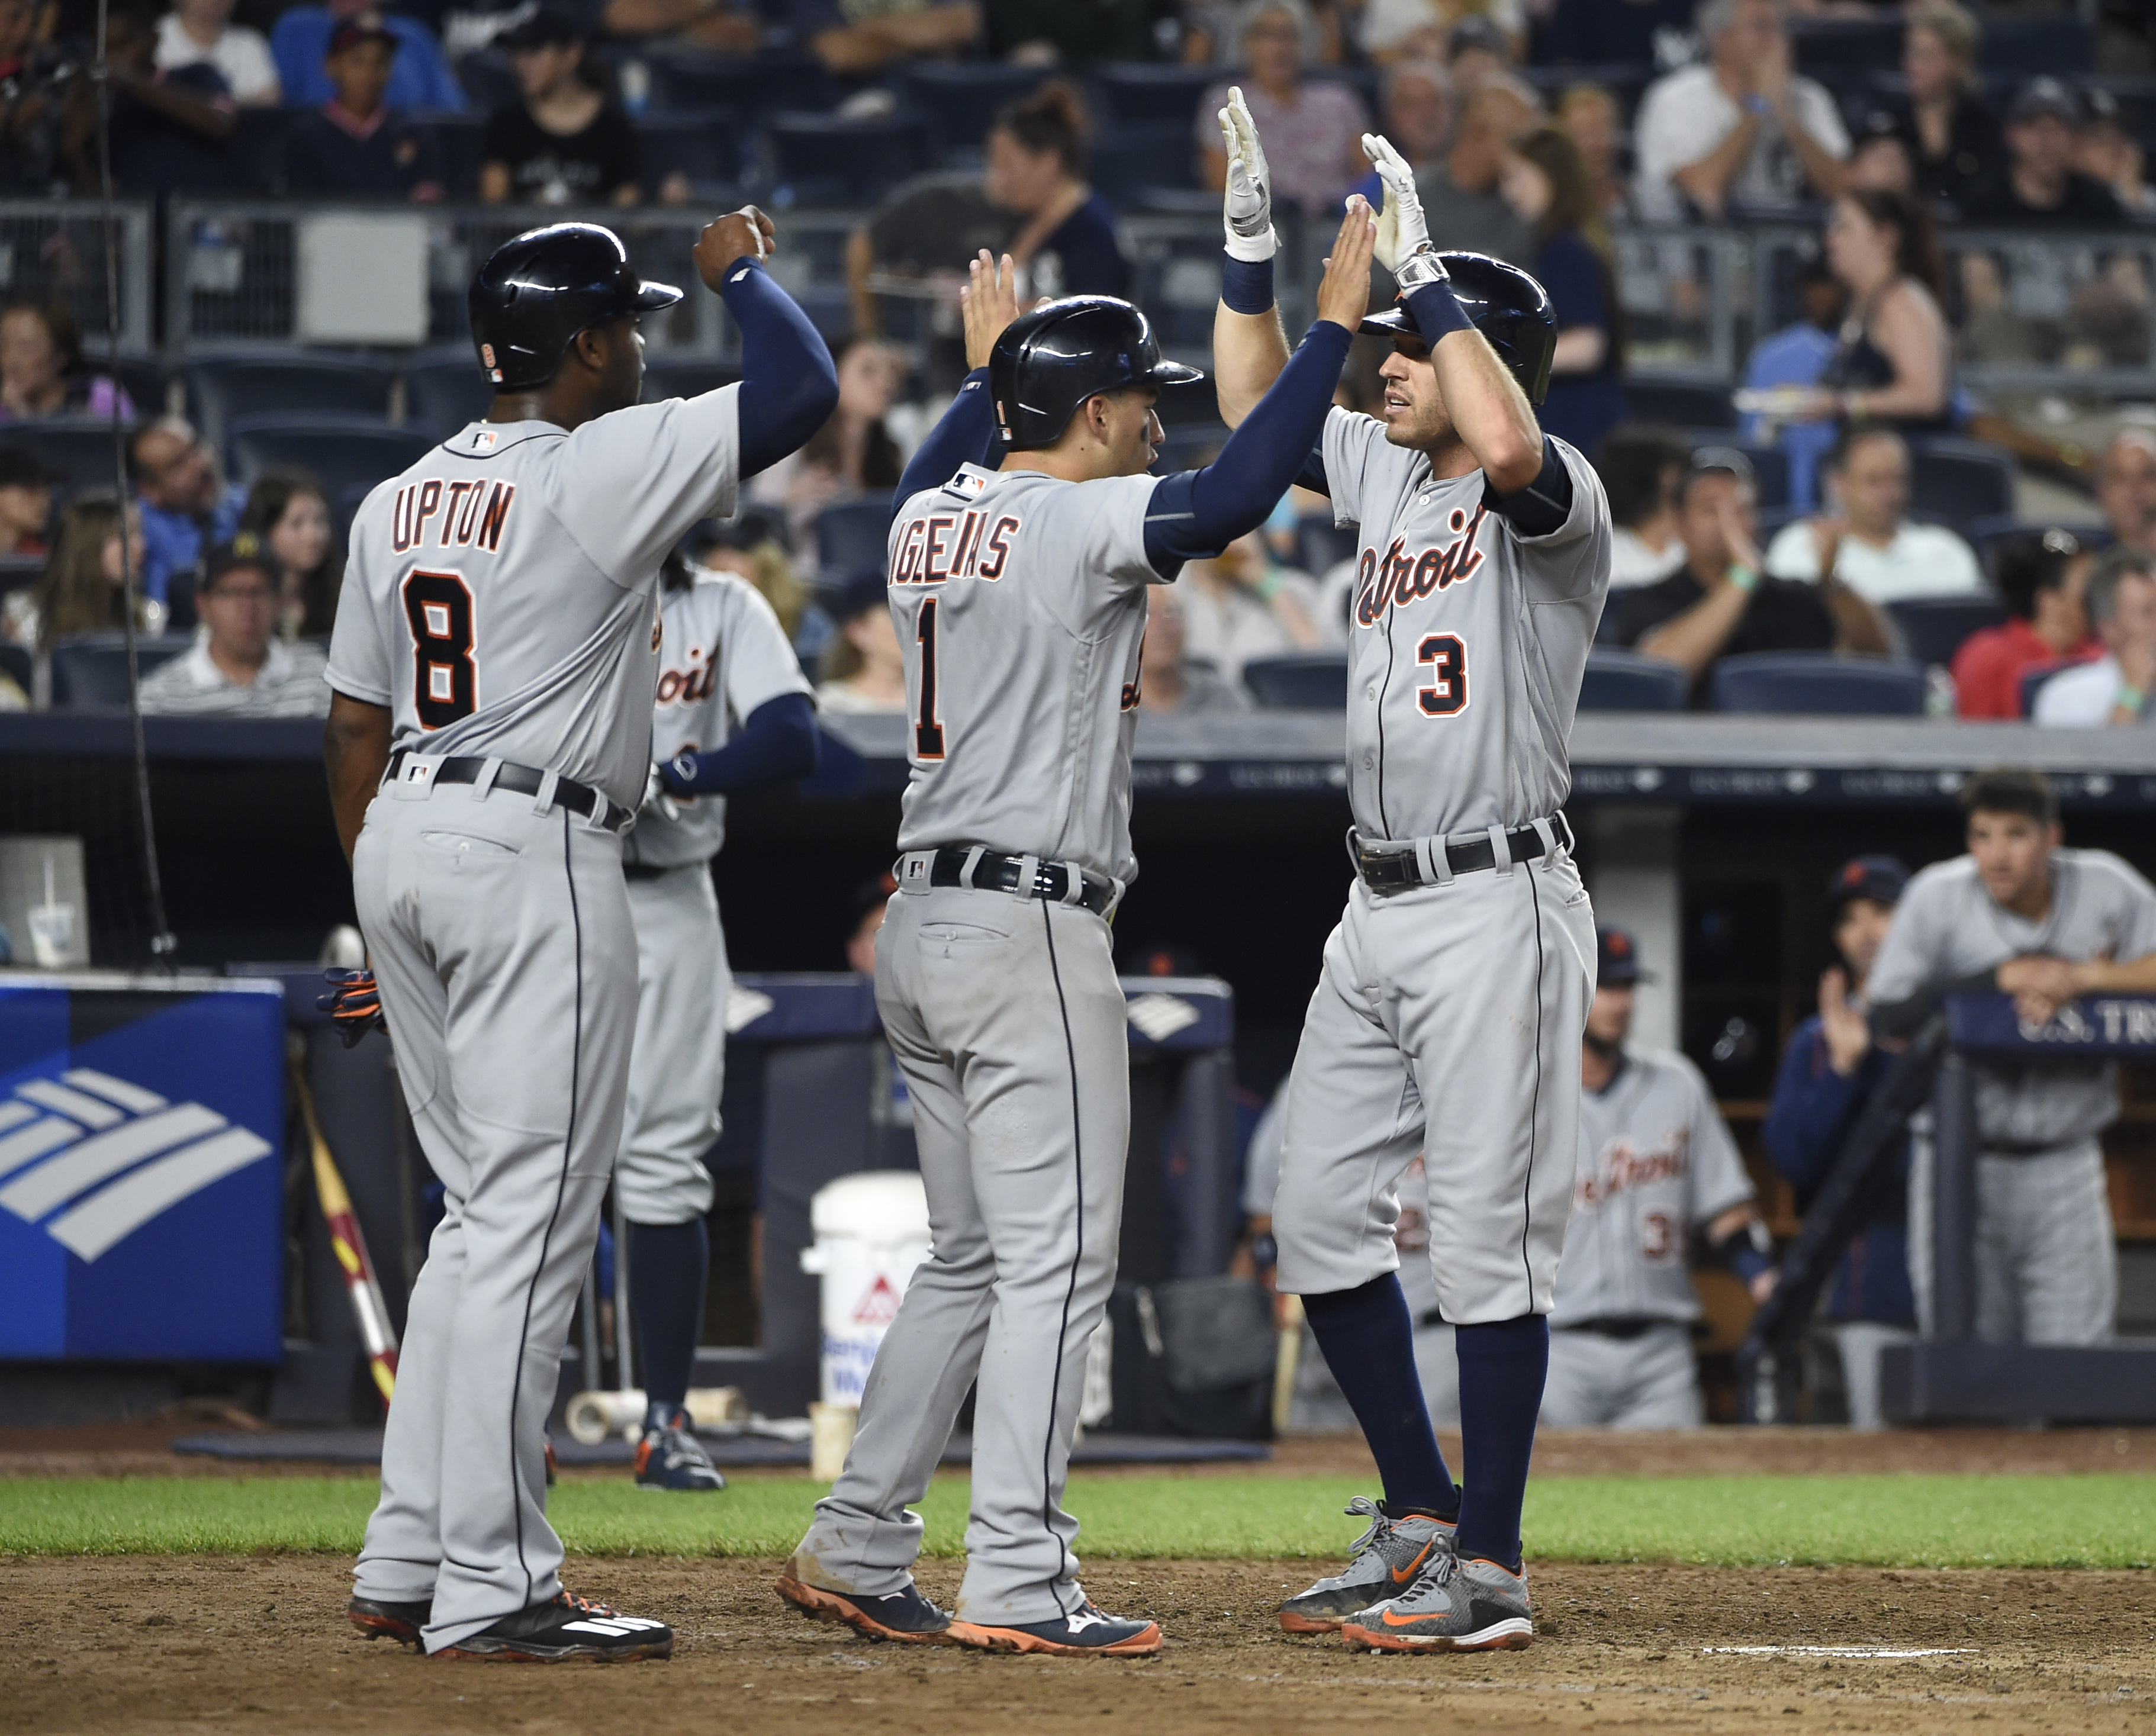 Detroit Tigers Ian Kinsler (3) is high-fived at home plate with Justin Upton (8) and Jose Iglesias (1) after Upton and Iglesias both scored on his three-run home run off New York Yankees starting pitcher Masahiro Tanaka in the fifth inning of a baseball g